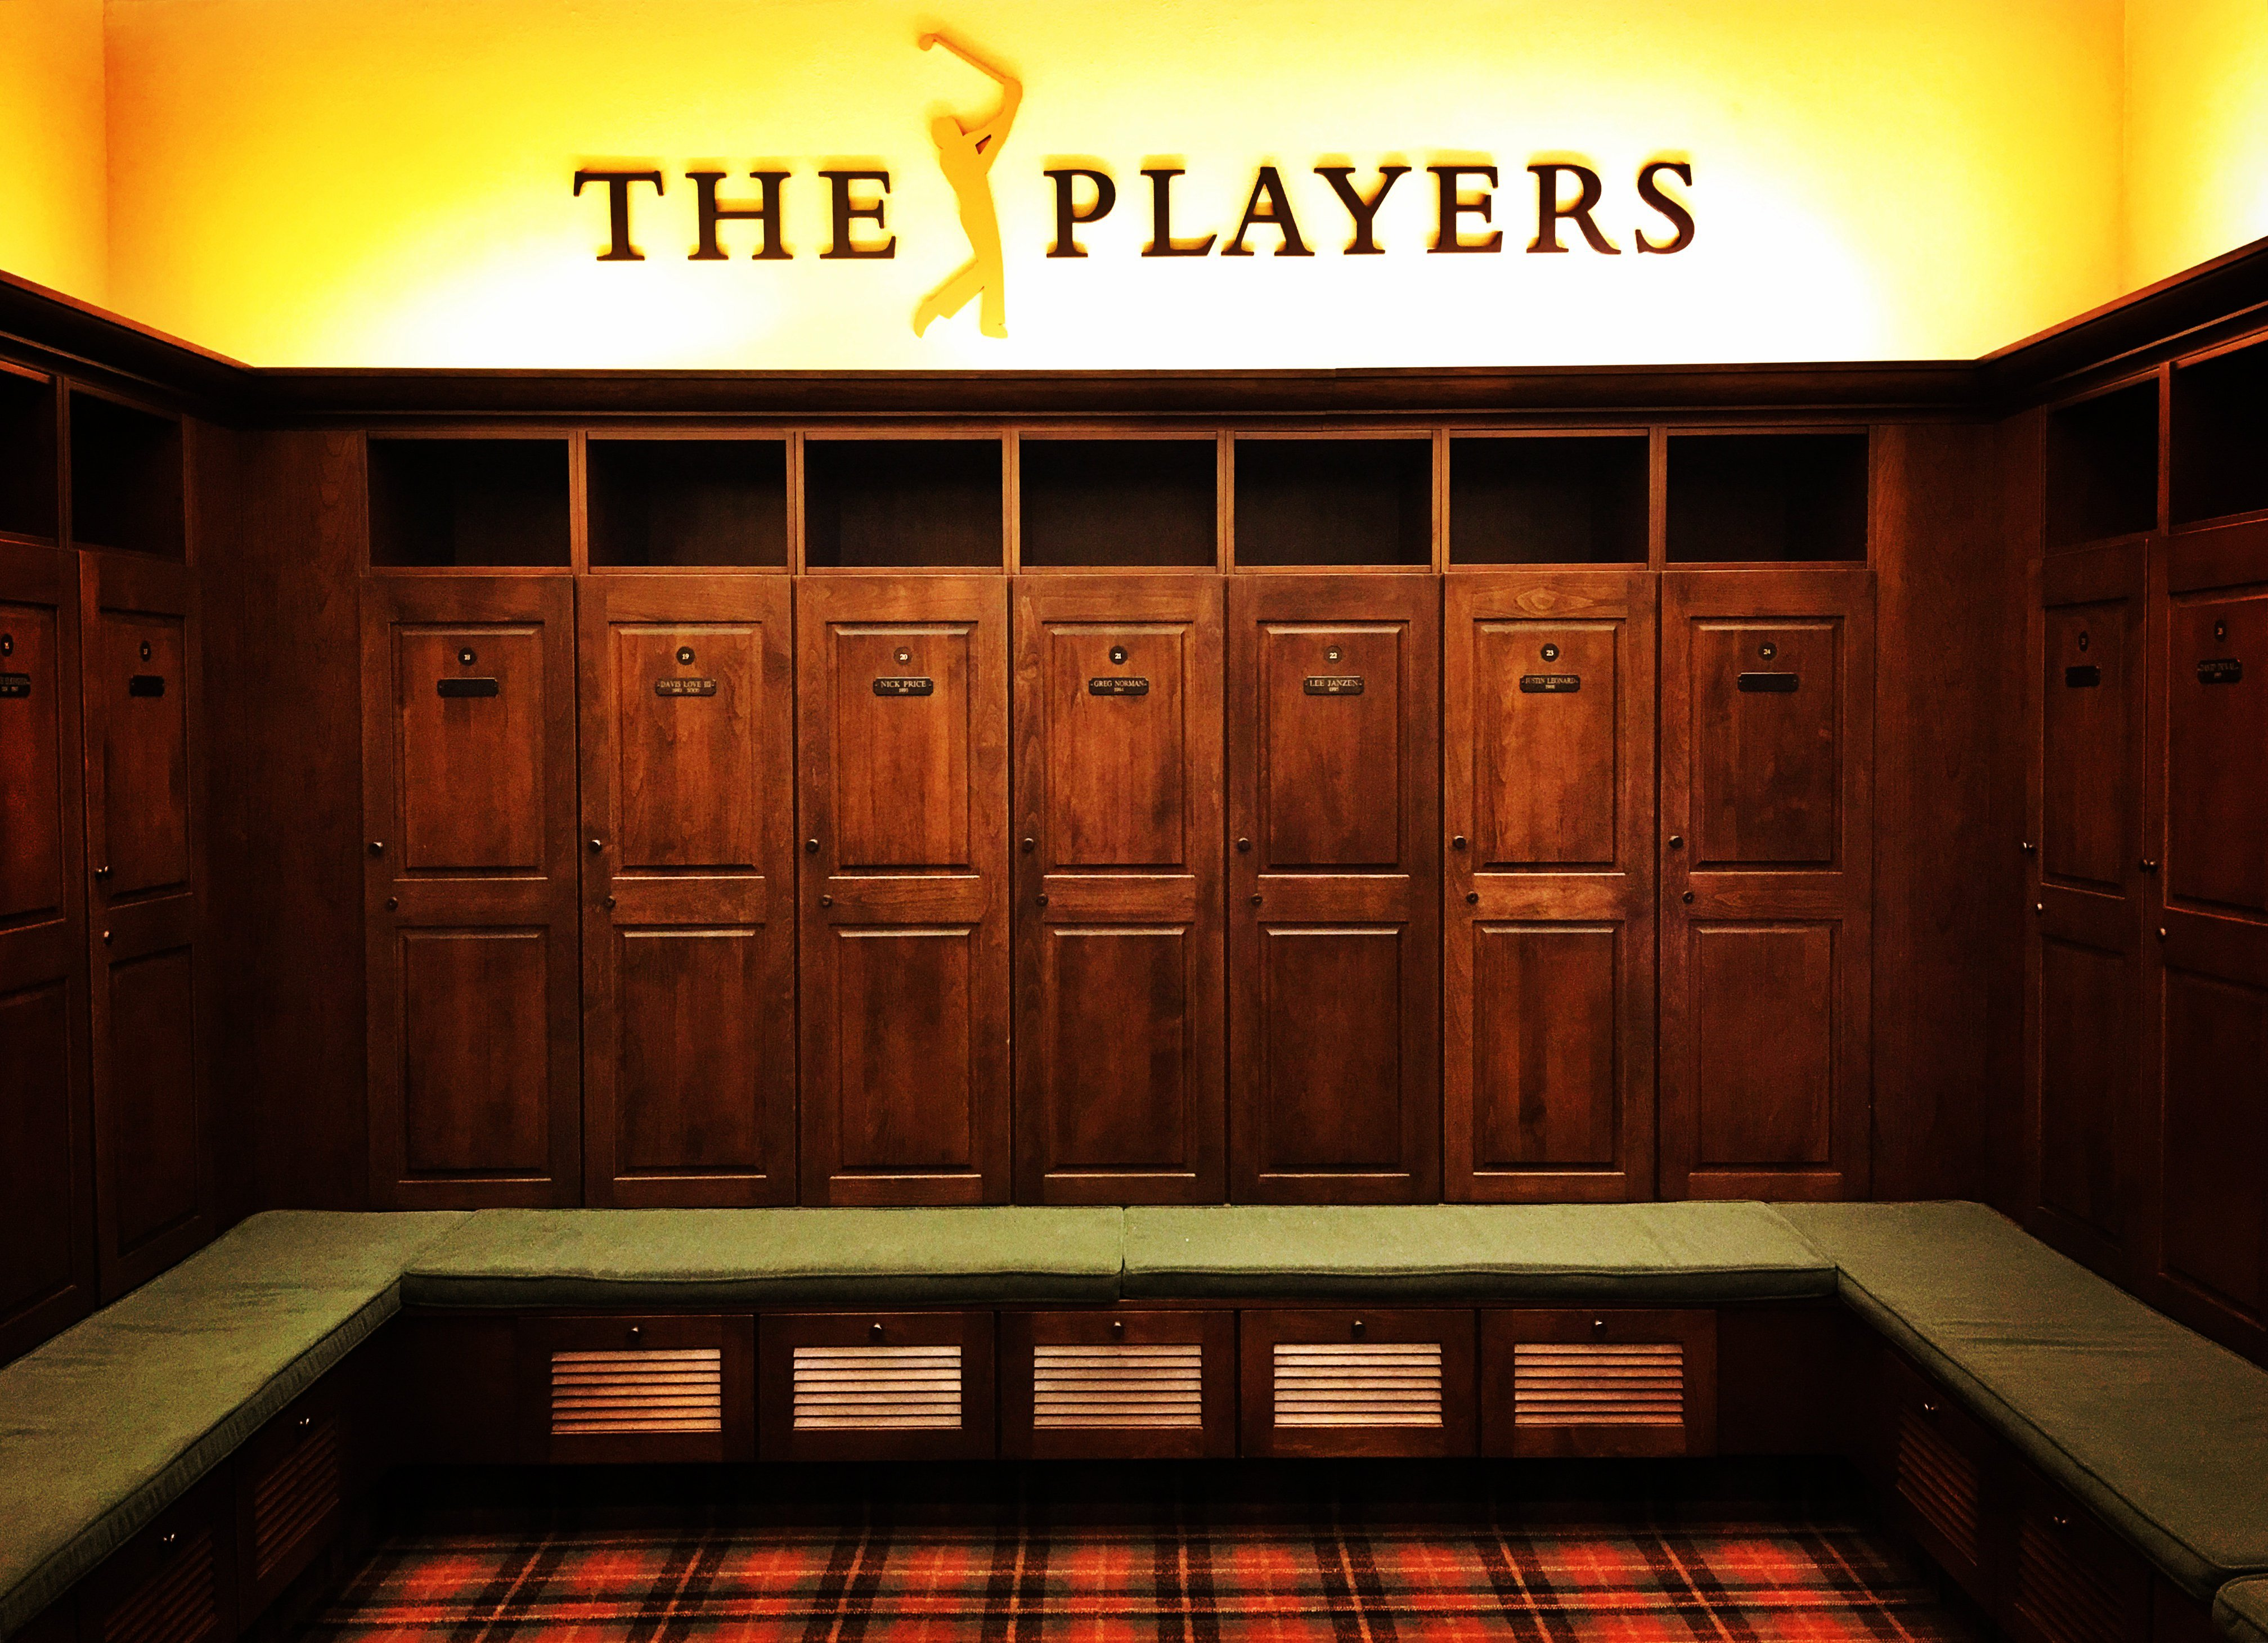 PONTE VEDRA BEACH, FL - MAY 8: Champions locker room in the clubhouse before THE PLAYERS Championship on at TPC Sawgrass on May 8, 2016. (©2016 Brad Mangin/PGA TOUR)